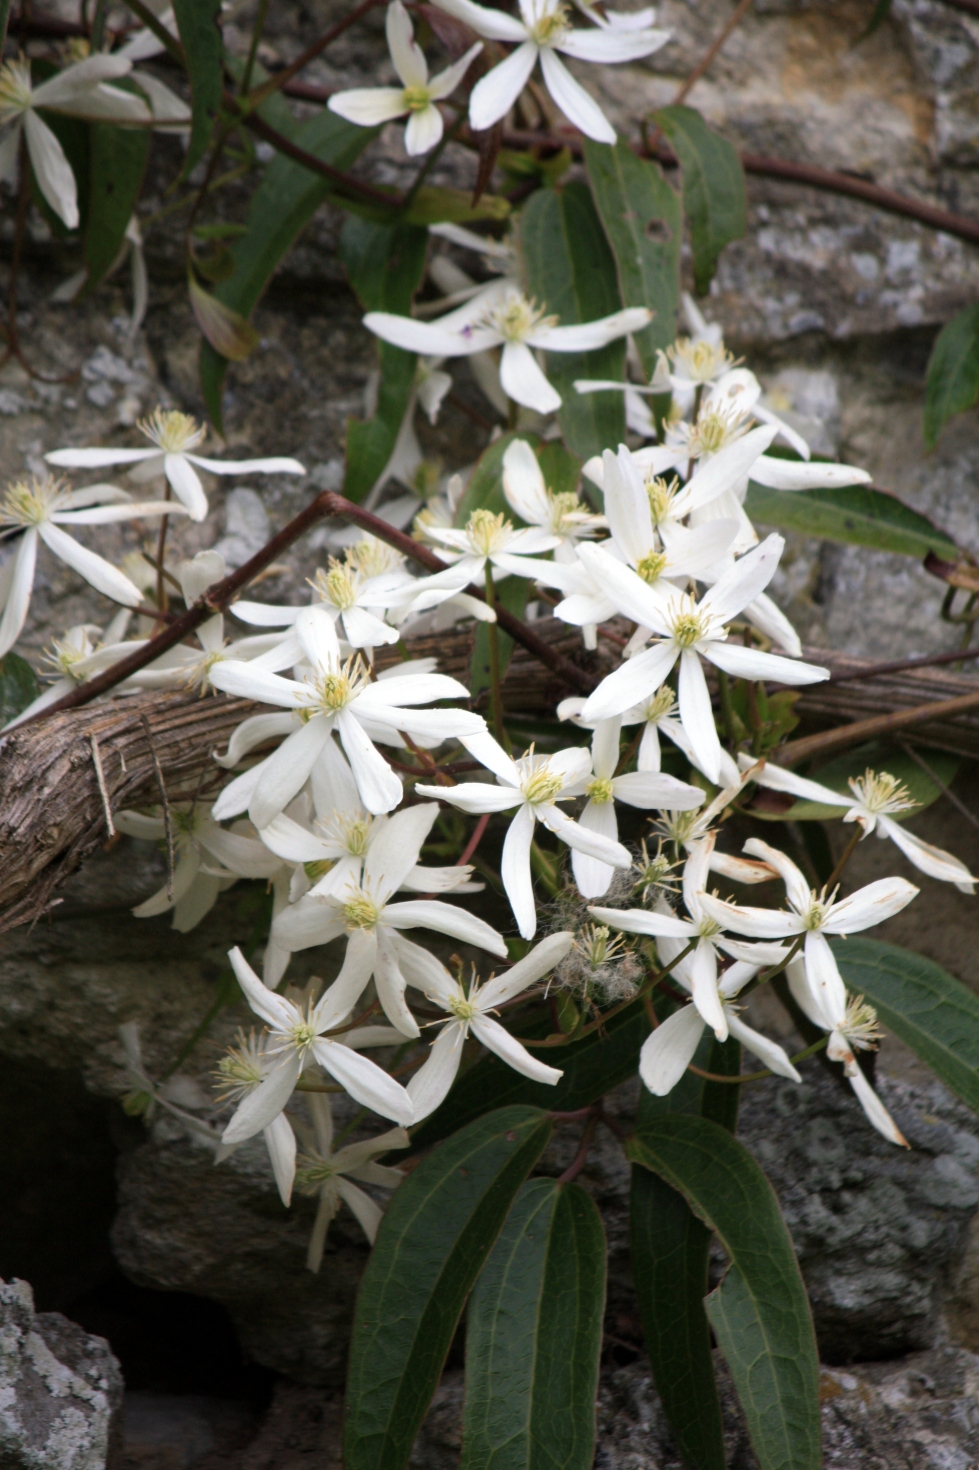 Clematis armandii, Saltwood Castle, May 2013